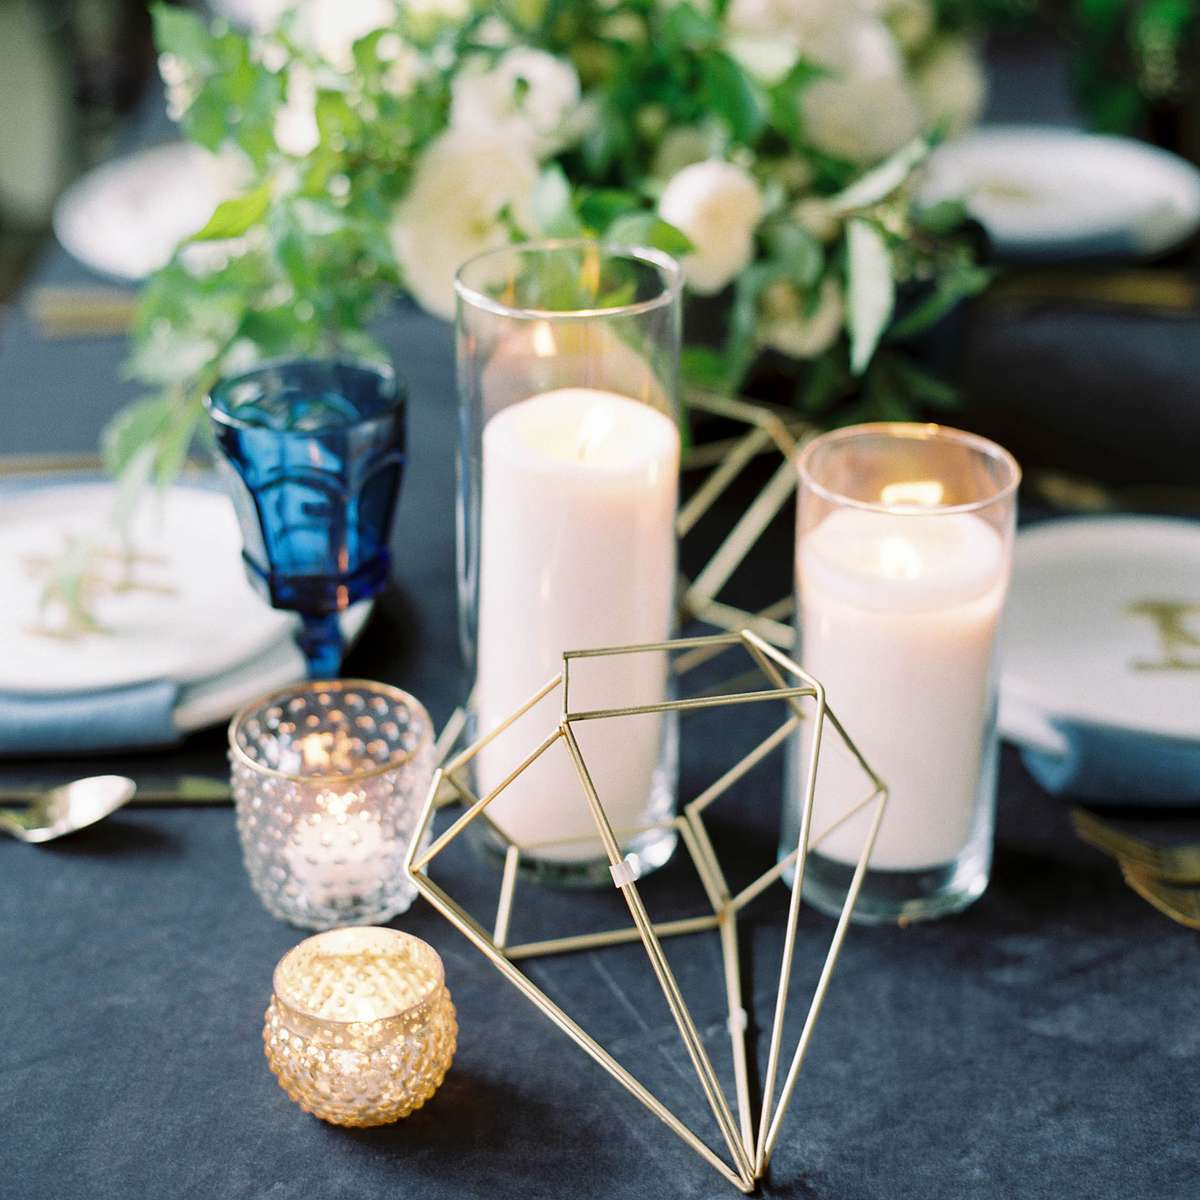 industrial glam party table decorations with wire diamonds, colored glasses and garland